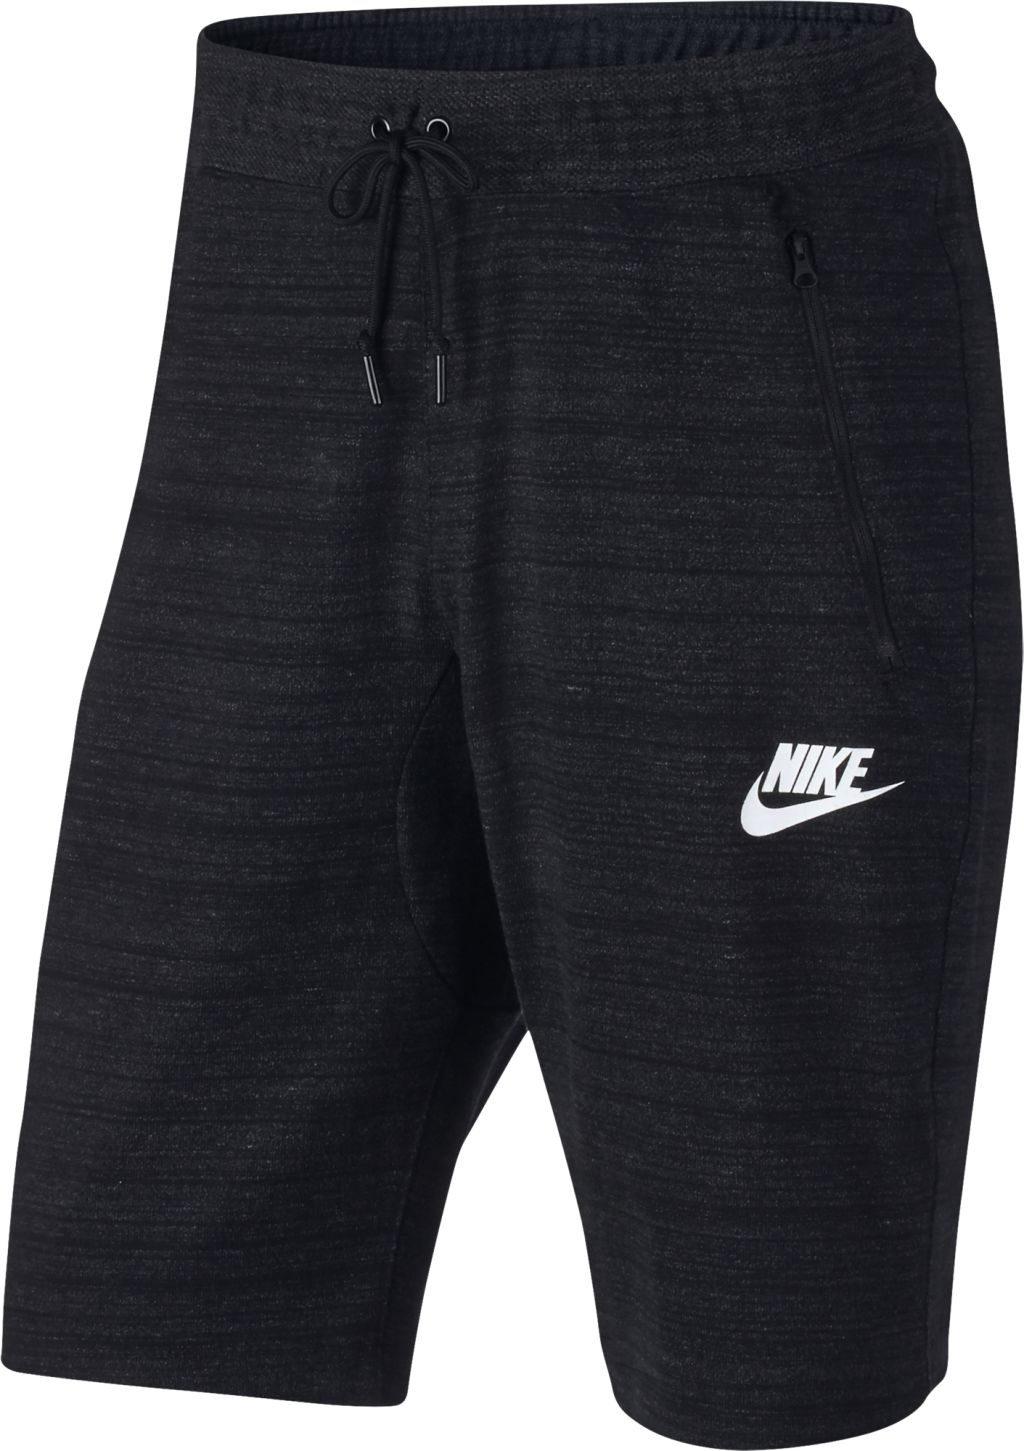 Nike Sportswear Advance 15 shorts M